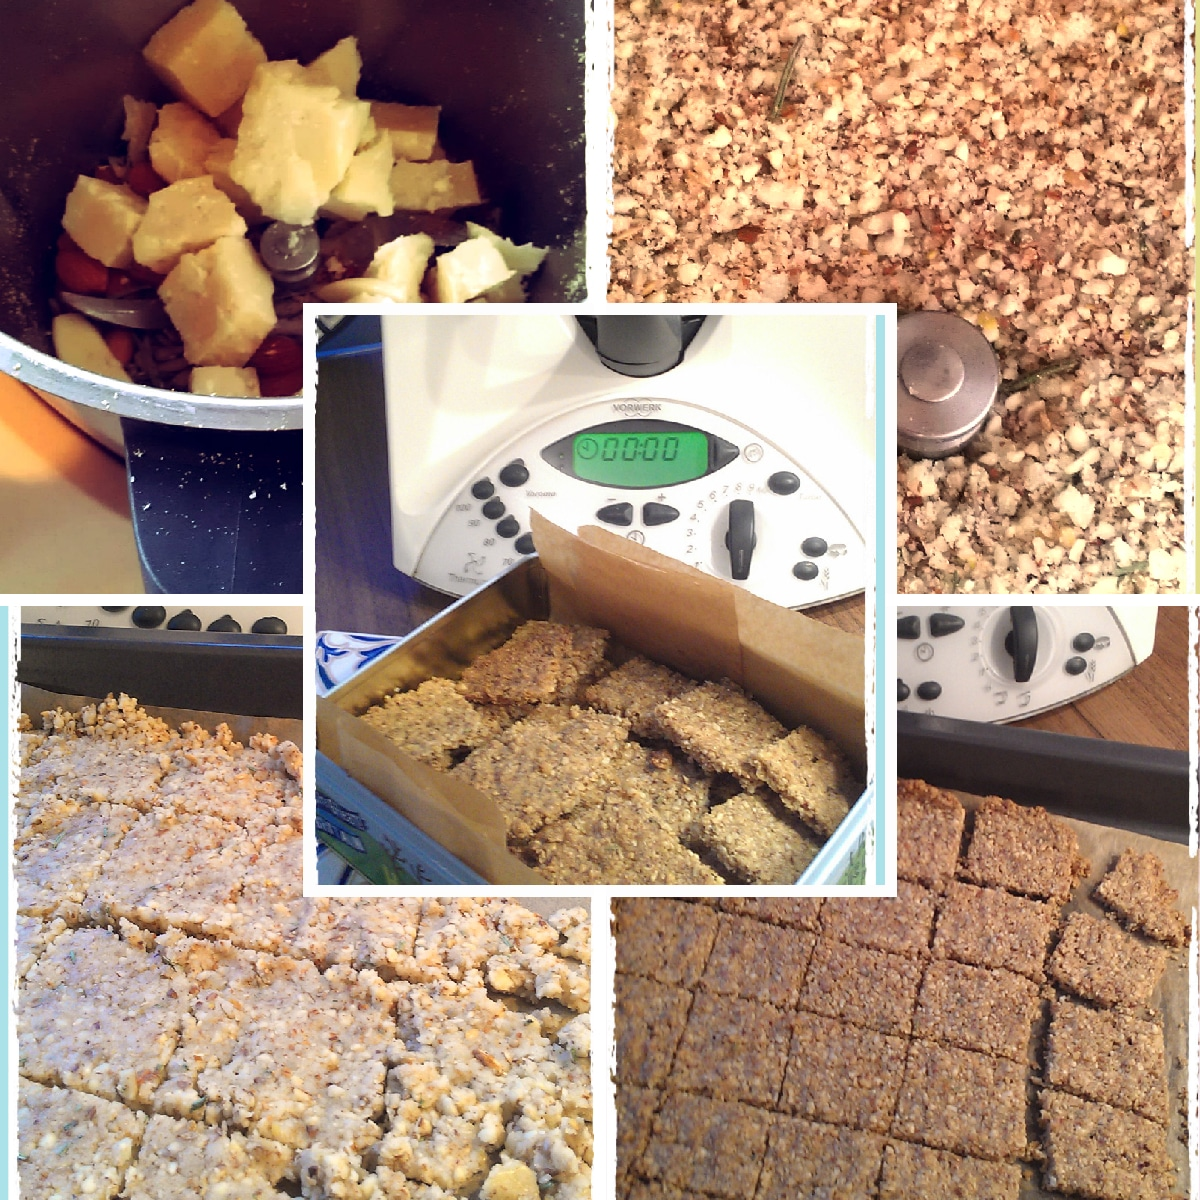 From dry ingredients to delicious Thermomix baked almond and seed crackers in minutes. Fast and easy does it!